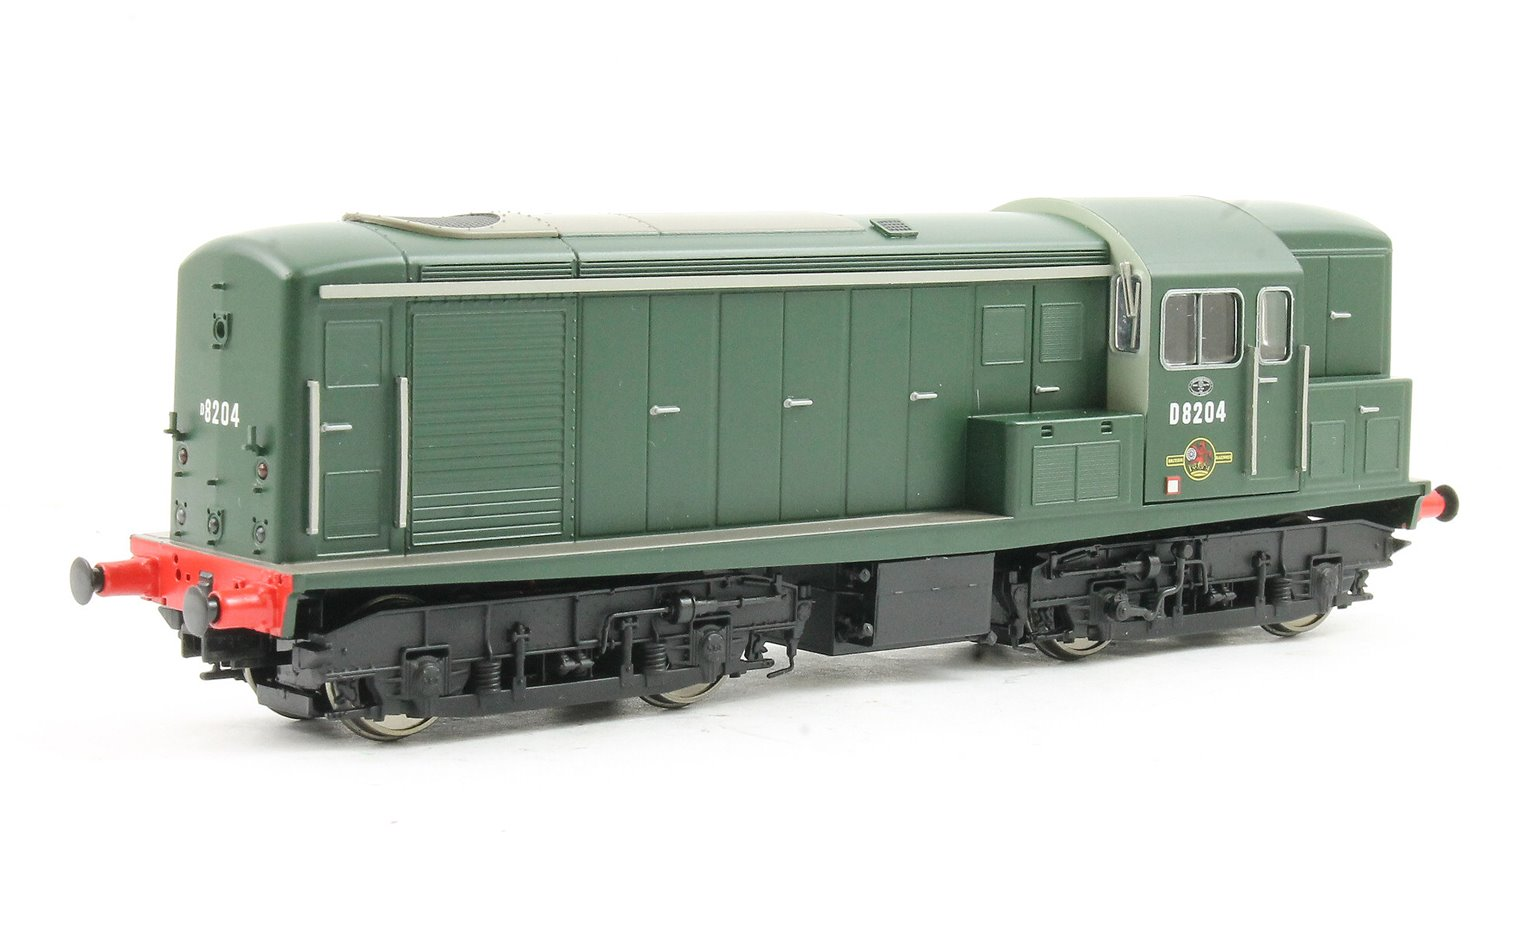 Class 15 D8204 in plain Green with numbers on front and rear